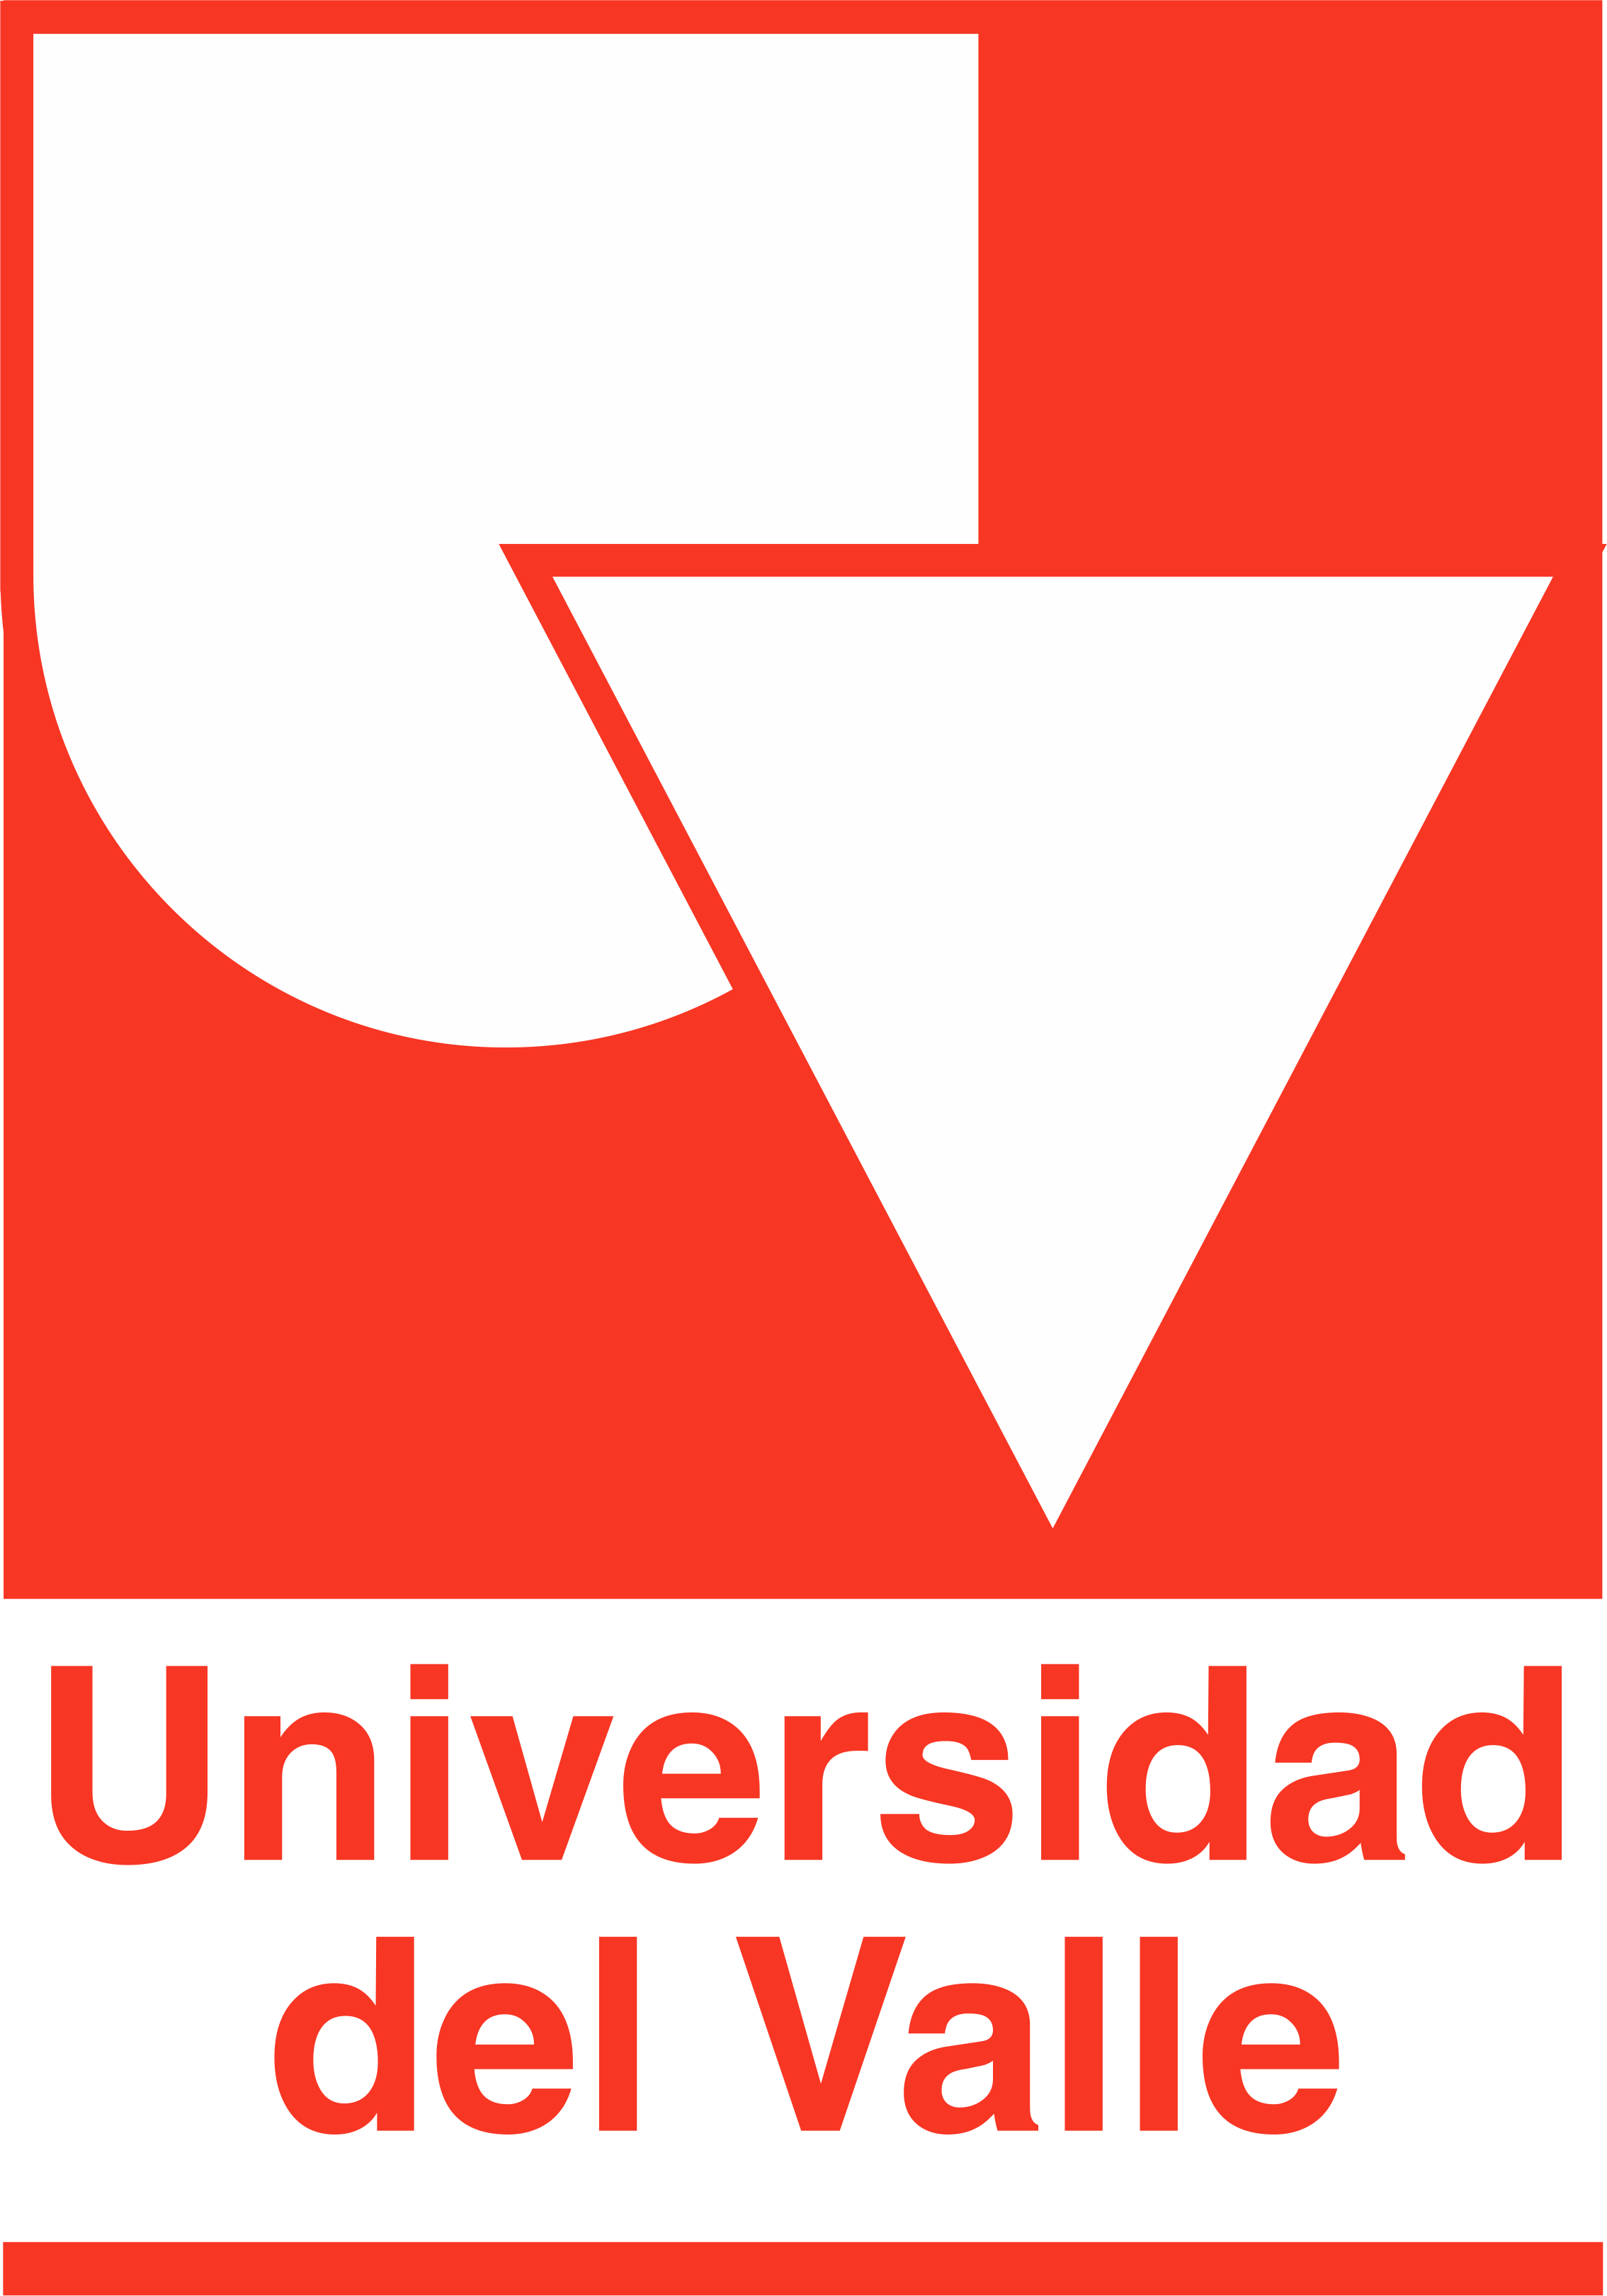 Universidad del Valle de Colombia